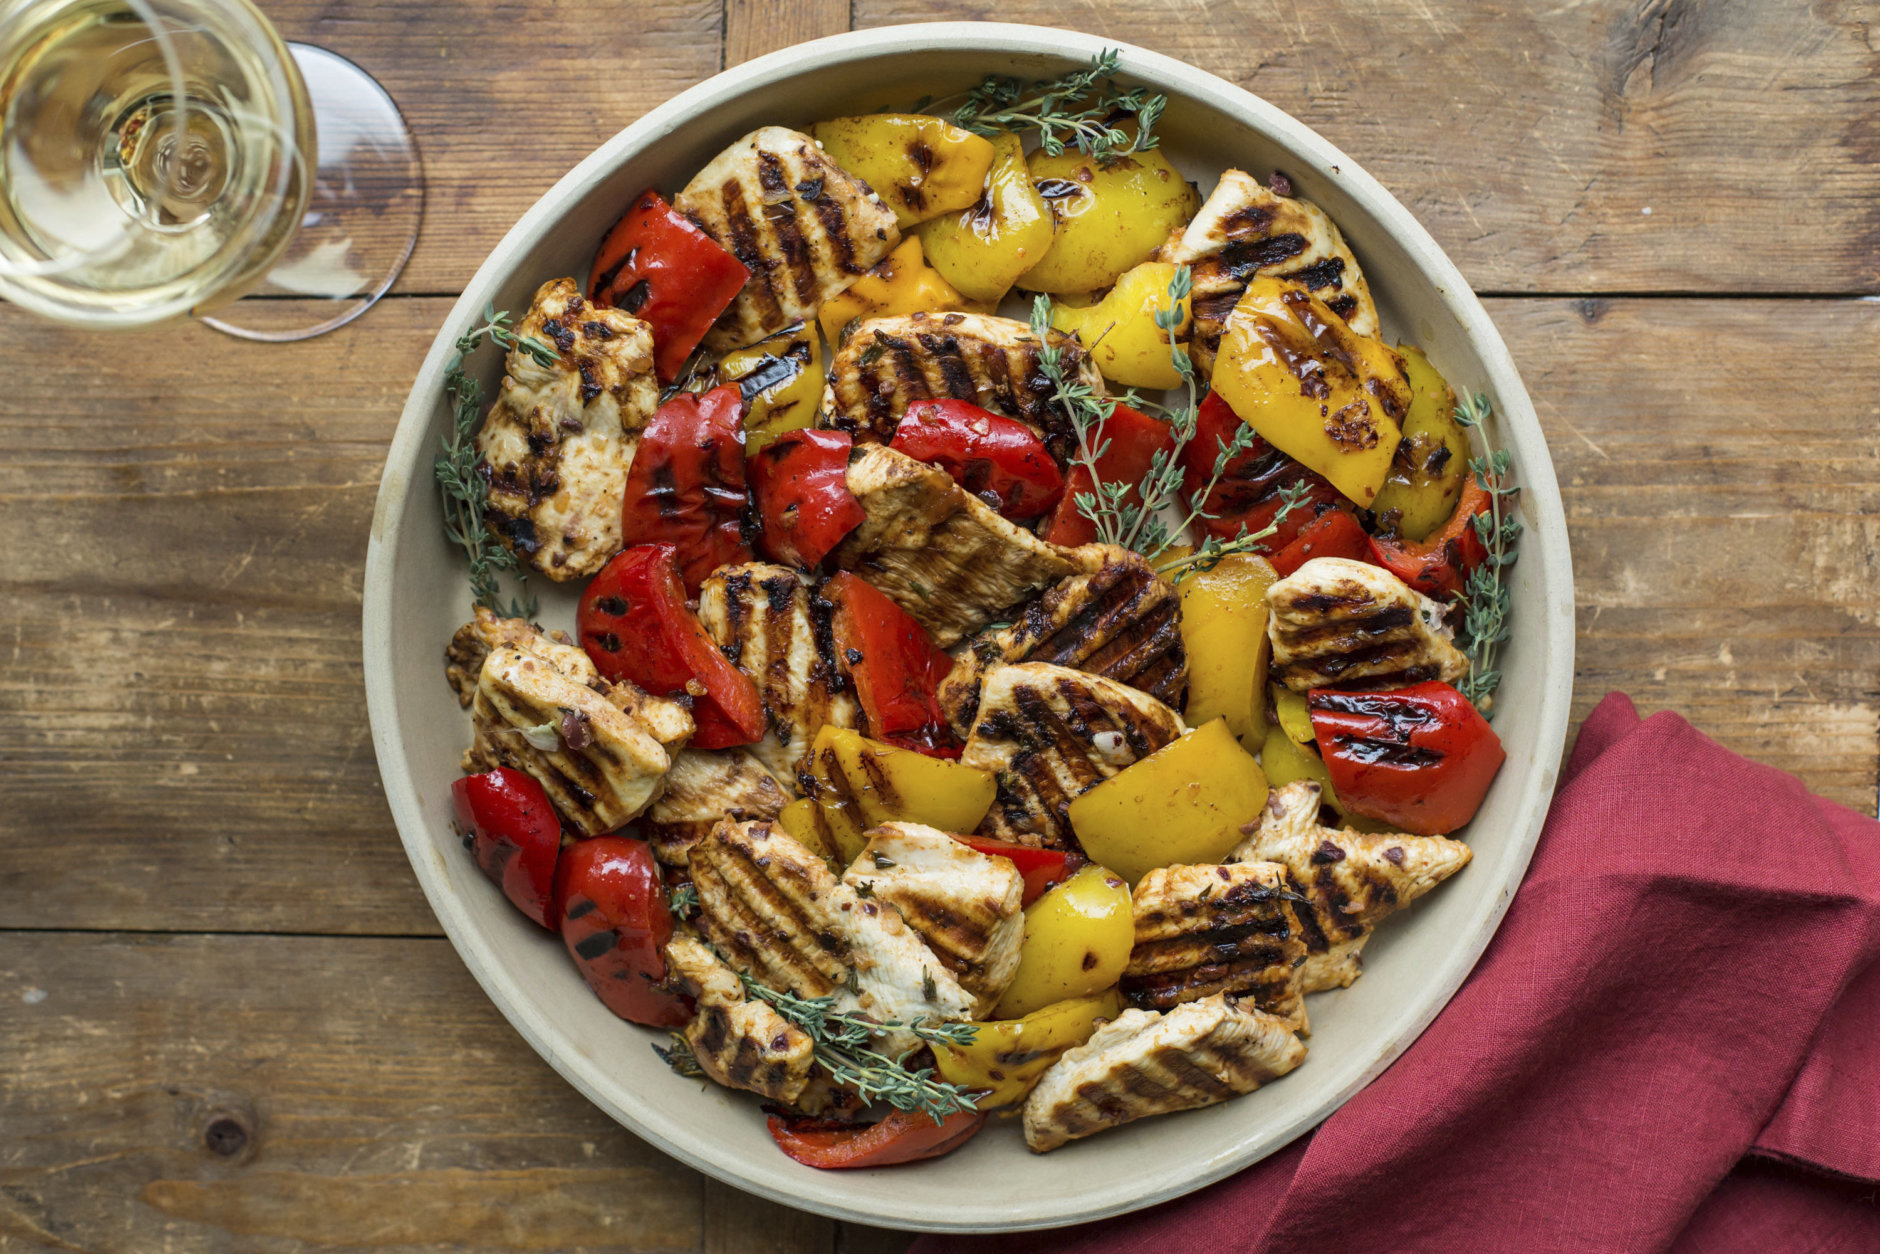 This April 2017 photo shows grilled lemony chicken and peppers in New York. This dish is from a recipe by Katie Workman. (Sarah Crowder via AP)